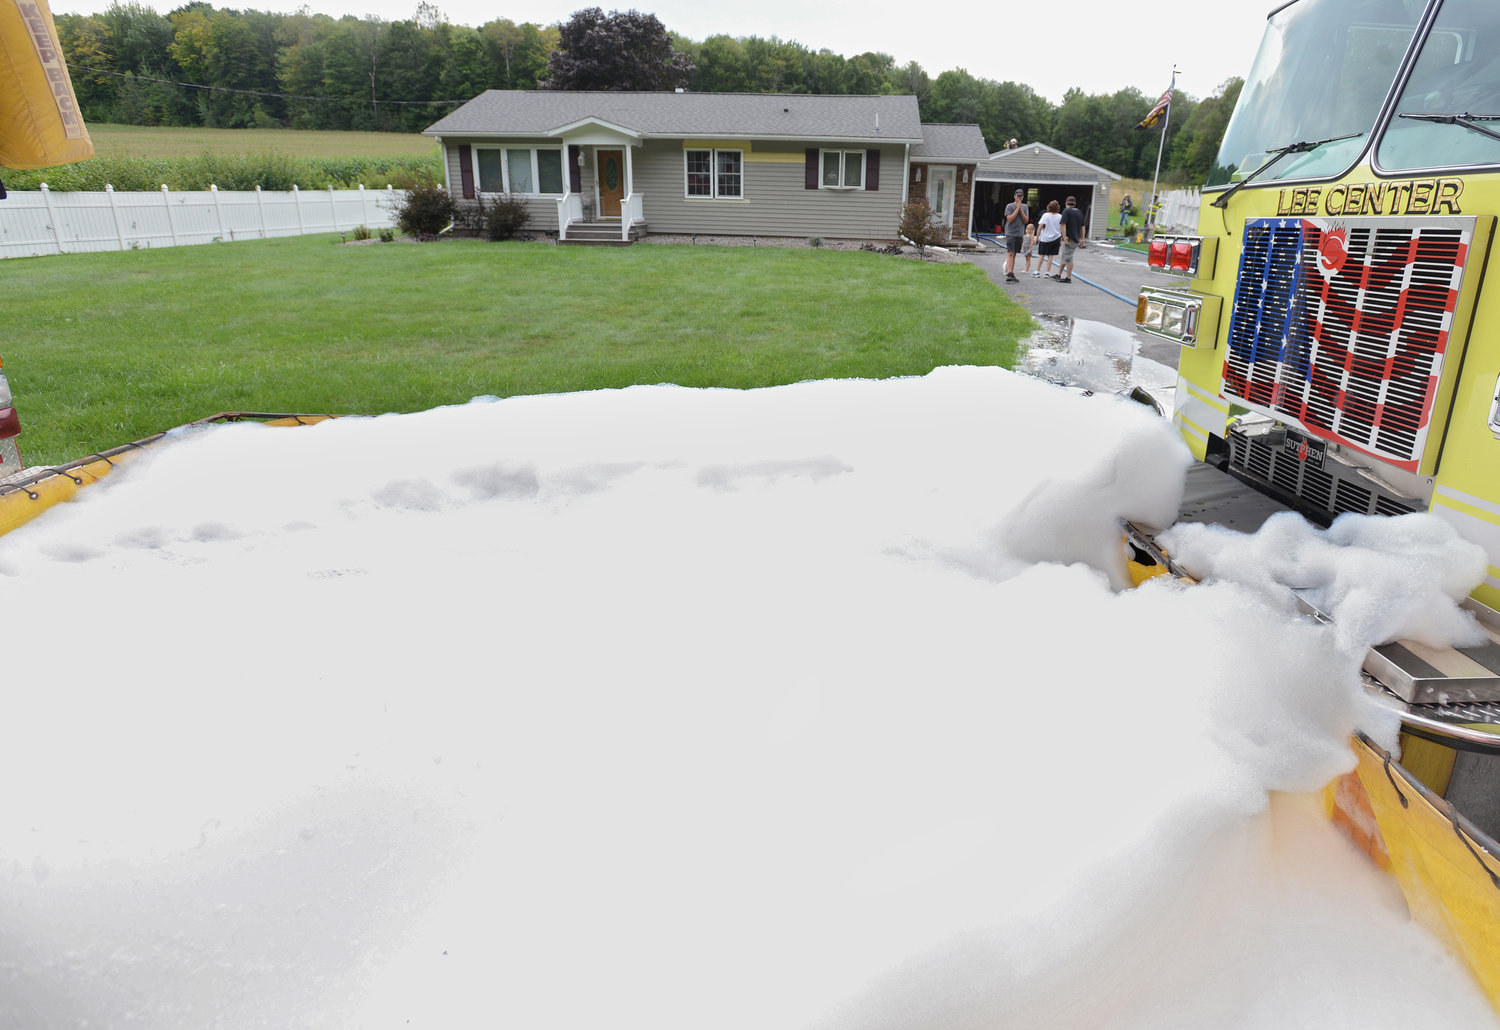 FOAM FIGHT — A pool of firefighting foam was built up by the Lee Center Fire Department to help battle a garage fire on Kiwanis Road Thursday afternoon. Fire officials said no one was injured and the residence was spared. (Sentinel photo by John Clifford)